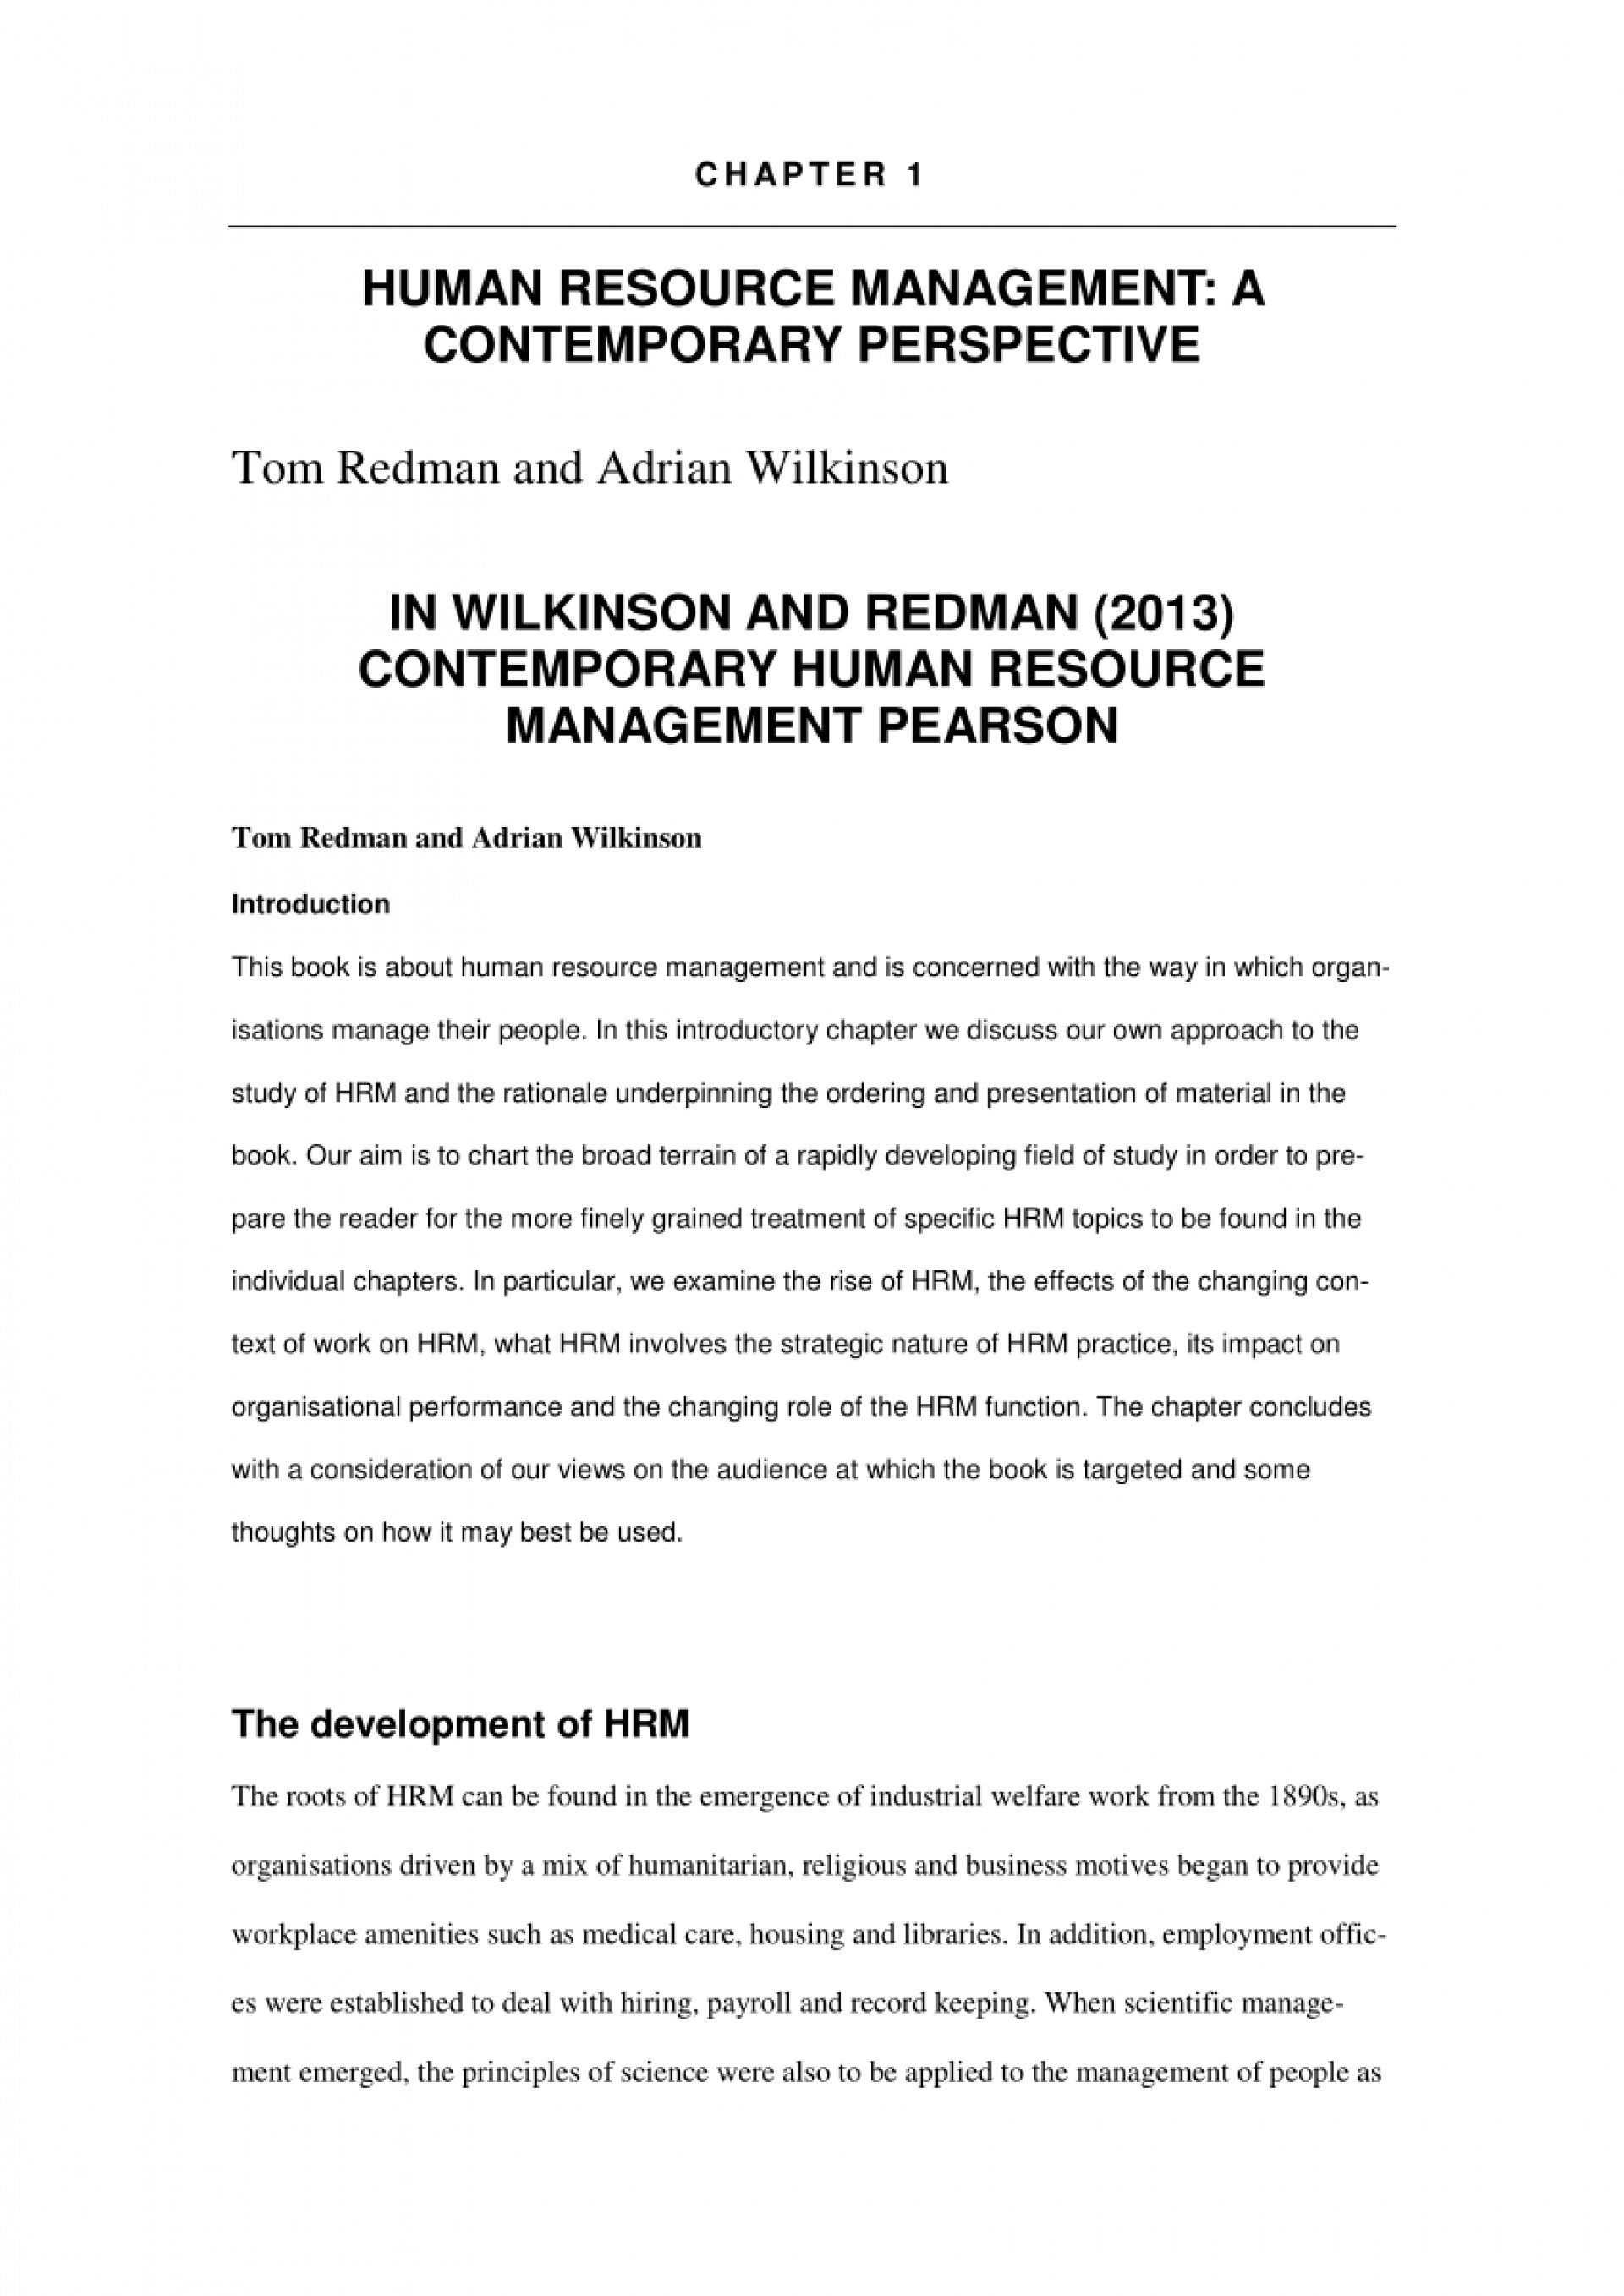 005 Largepreview Research Paper Hrm Papers Free Download Phenomenal Pdf 1920